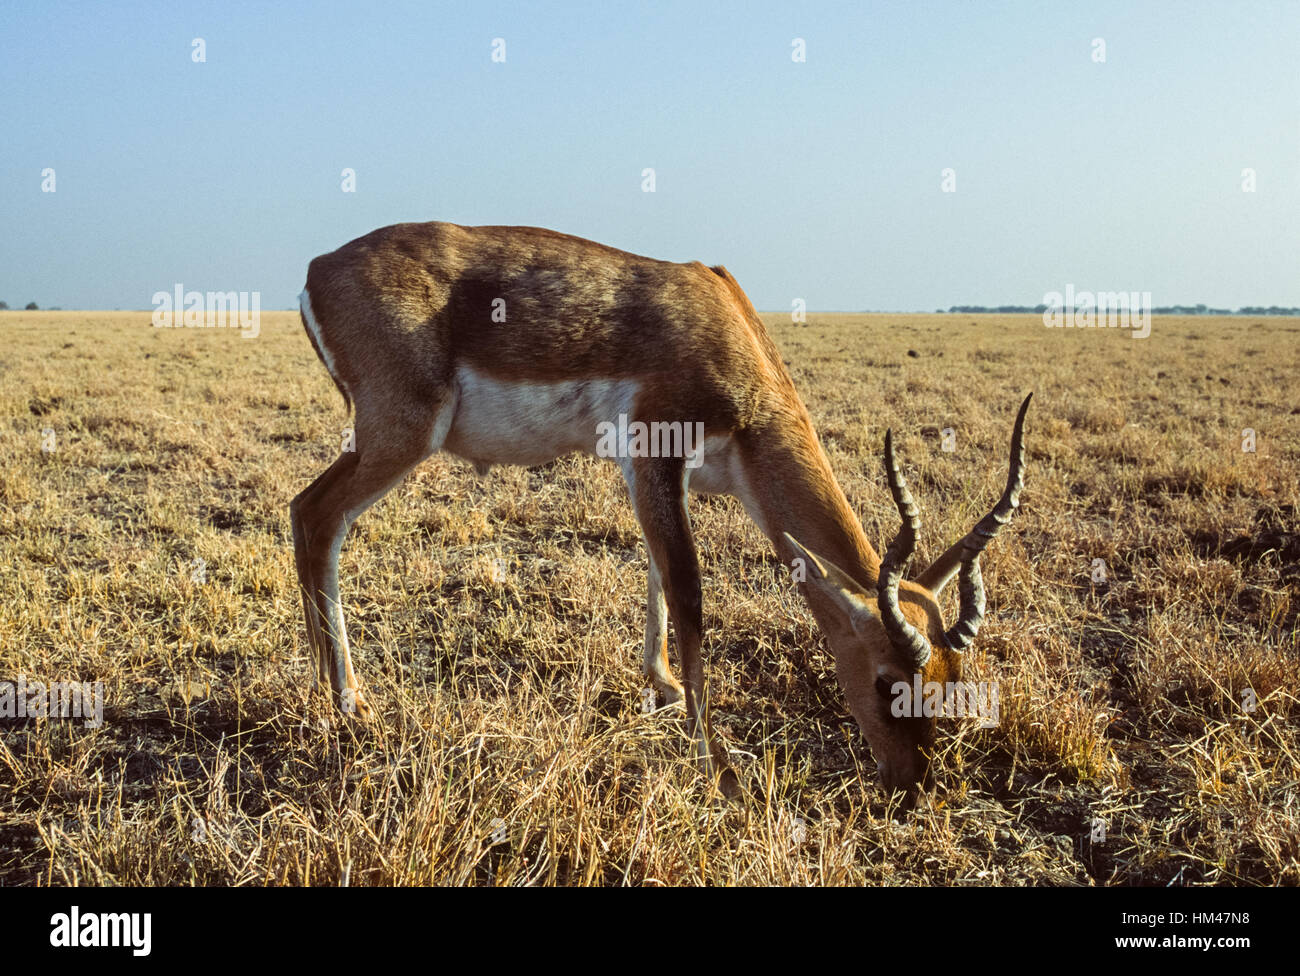 Indian Blackbuck, (Antilope cervicapra),male on grassland plains, Blackbuck National Park,Velavadar,Gujarat,India - Stock Image